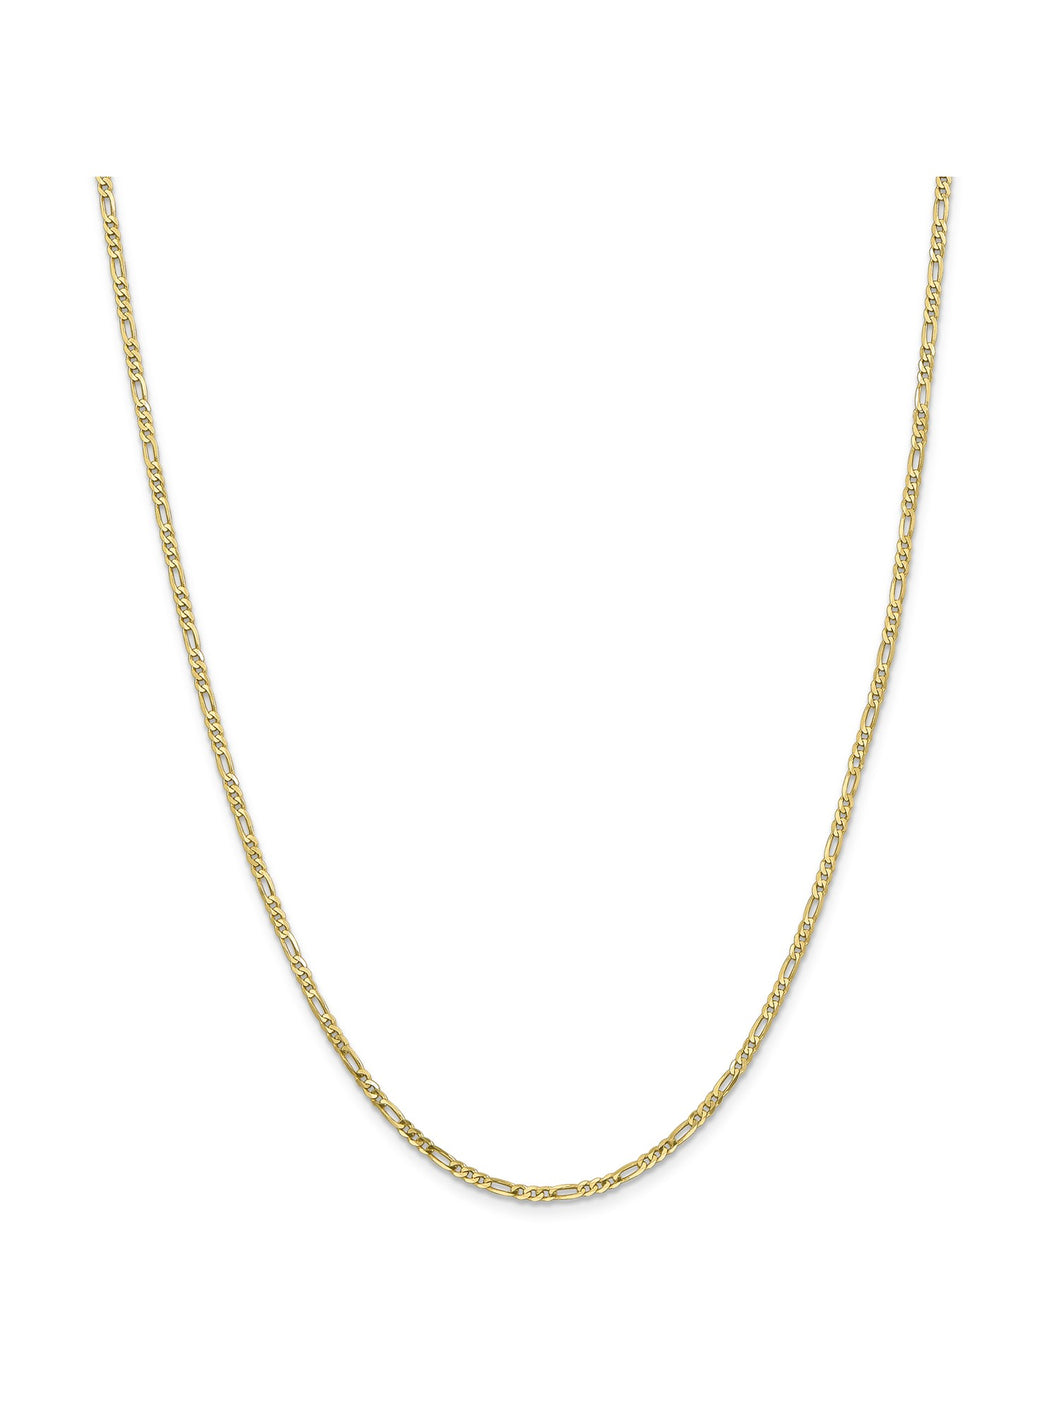 10k Yellow Gold 2.2mm Wide Figaro Chain Necklace